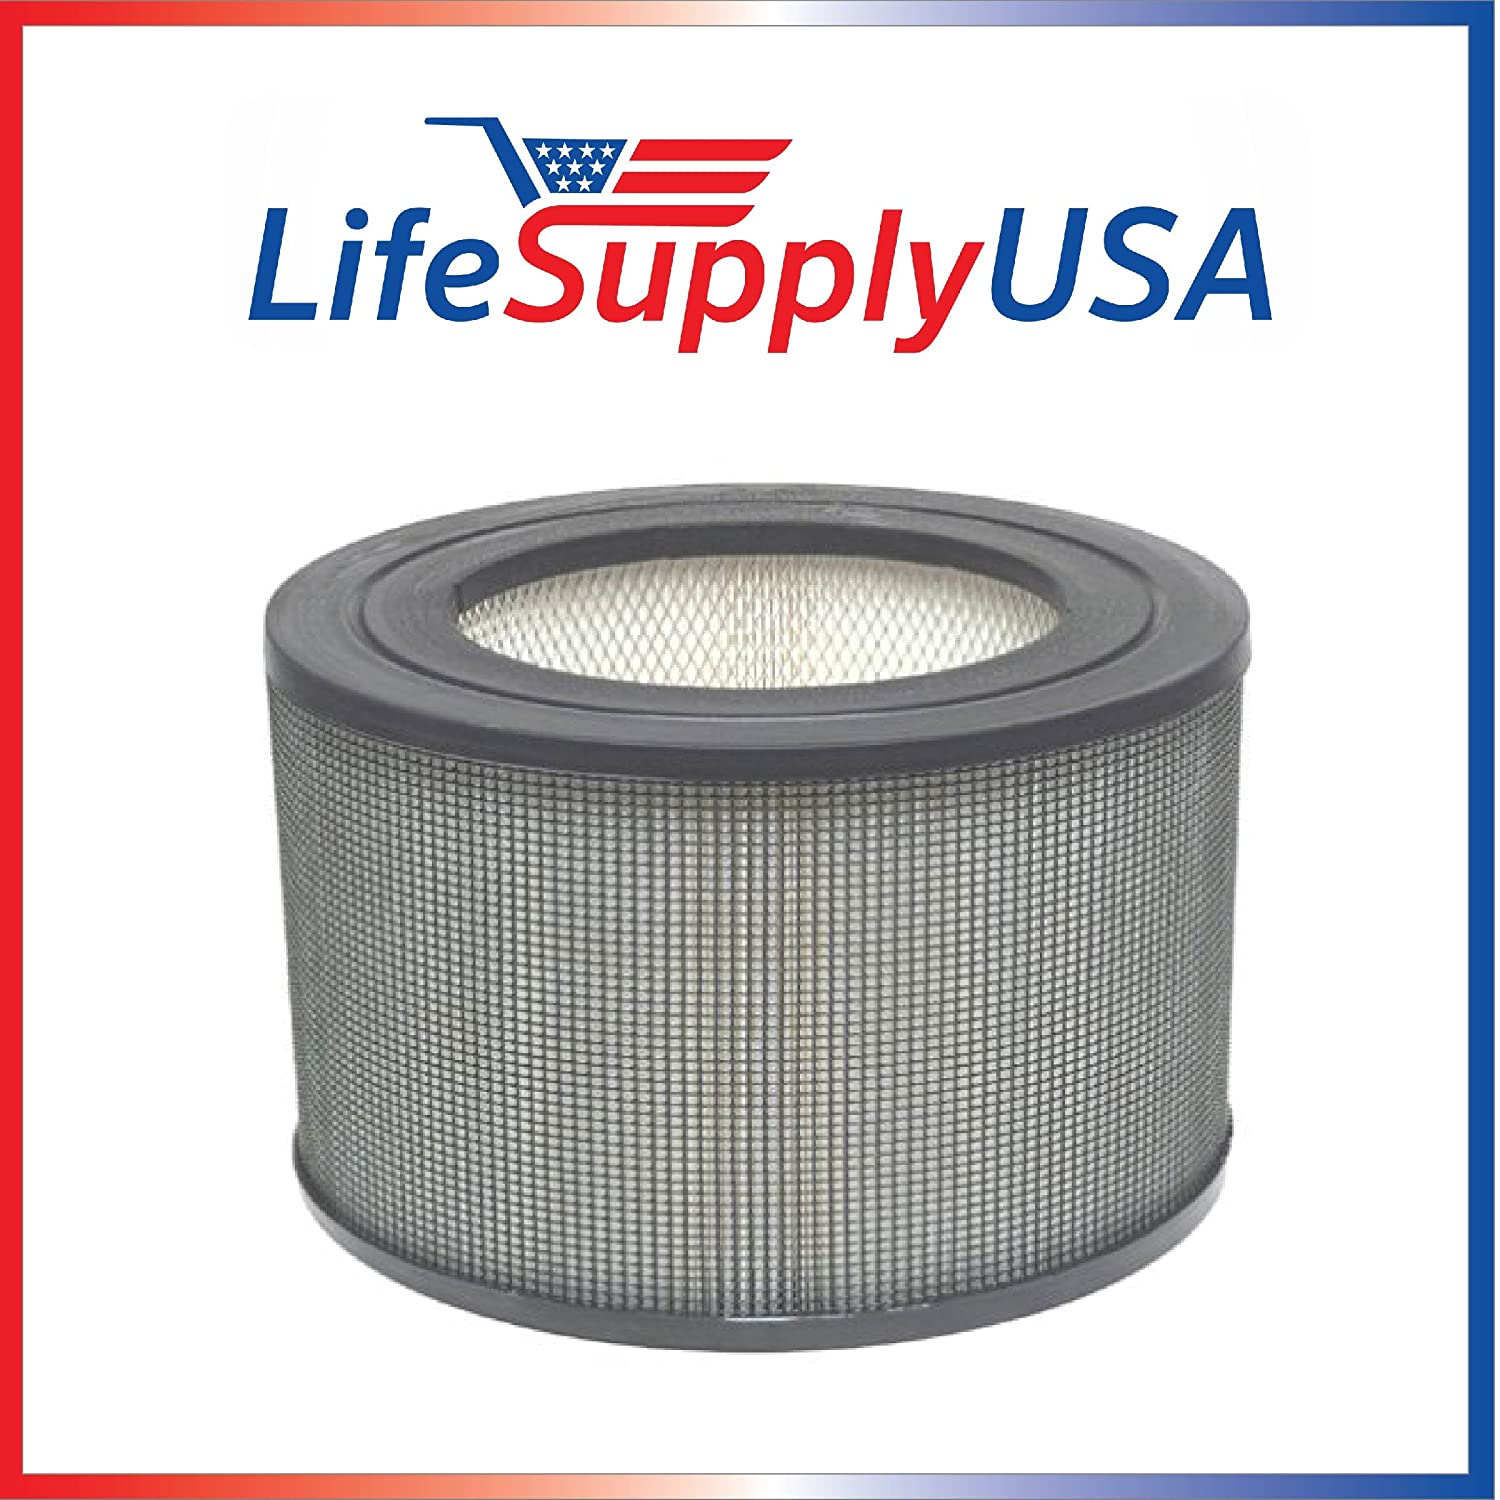 LifeSupplyUSA Replacement Filter Fits Honeywell 24000/24500 Air Cleaner 13350 13500 13501 13502 13503 13520 13523 13525 13526 13528 13350 50250 50251 52500 63500 83162 83259 83287 83332